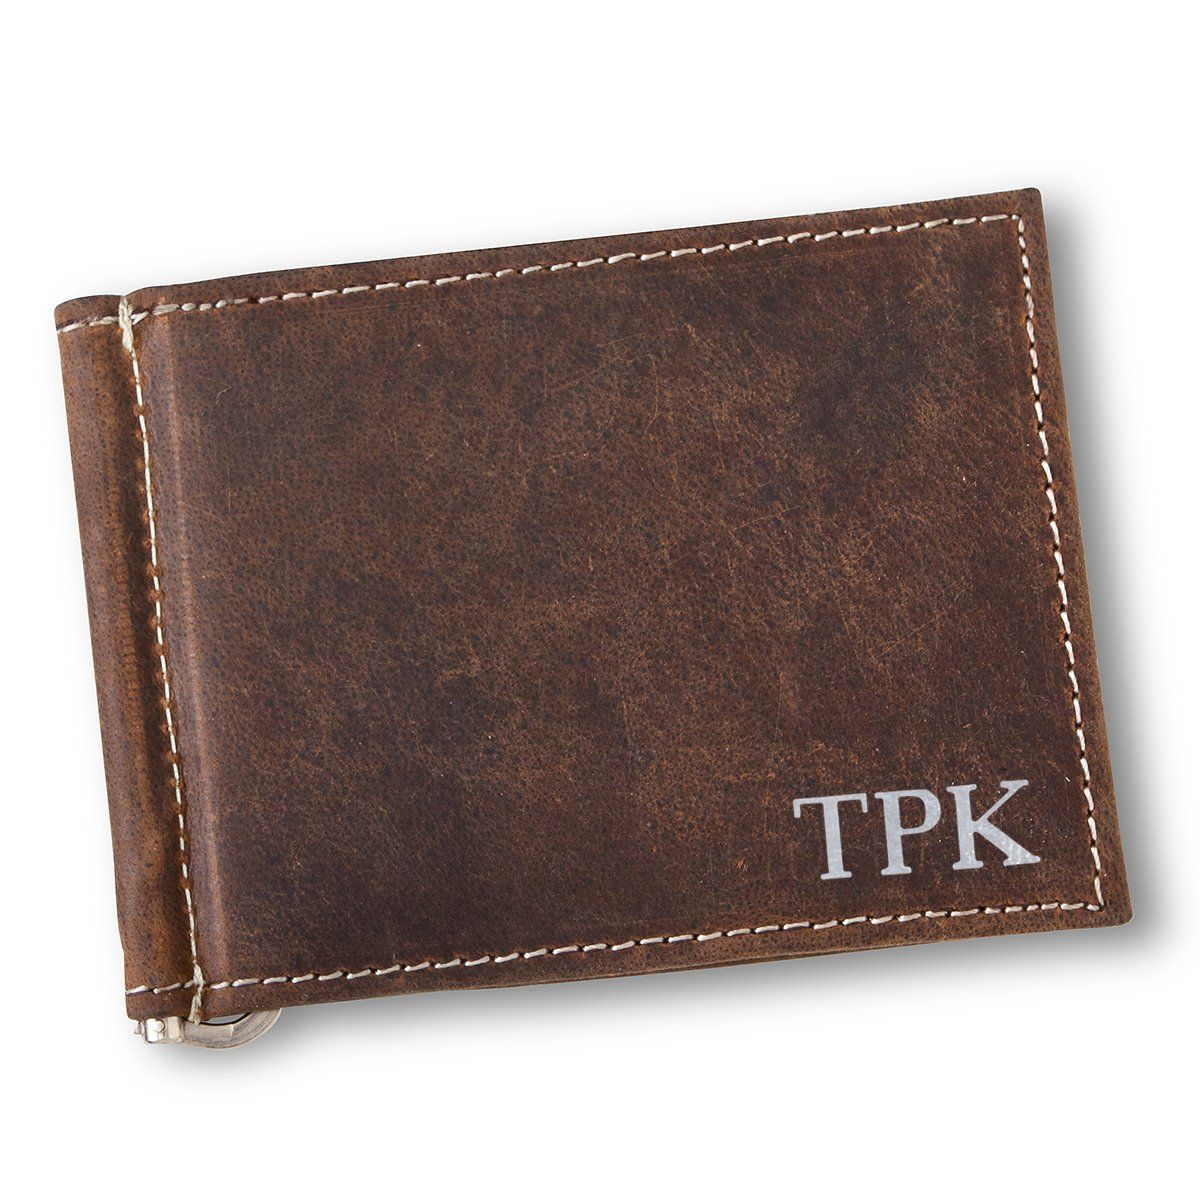 Personalized-Distressed-Brown-Borello-Leather-Wallet